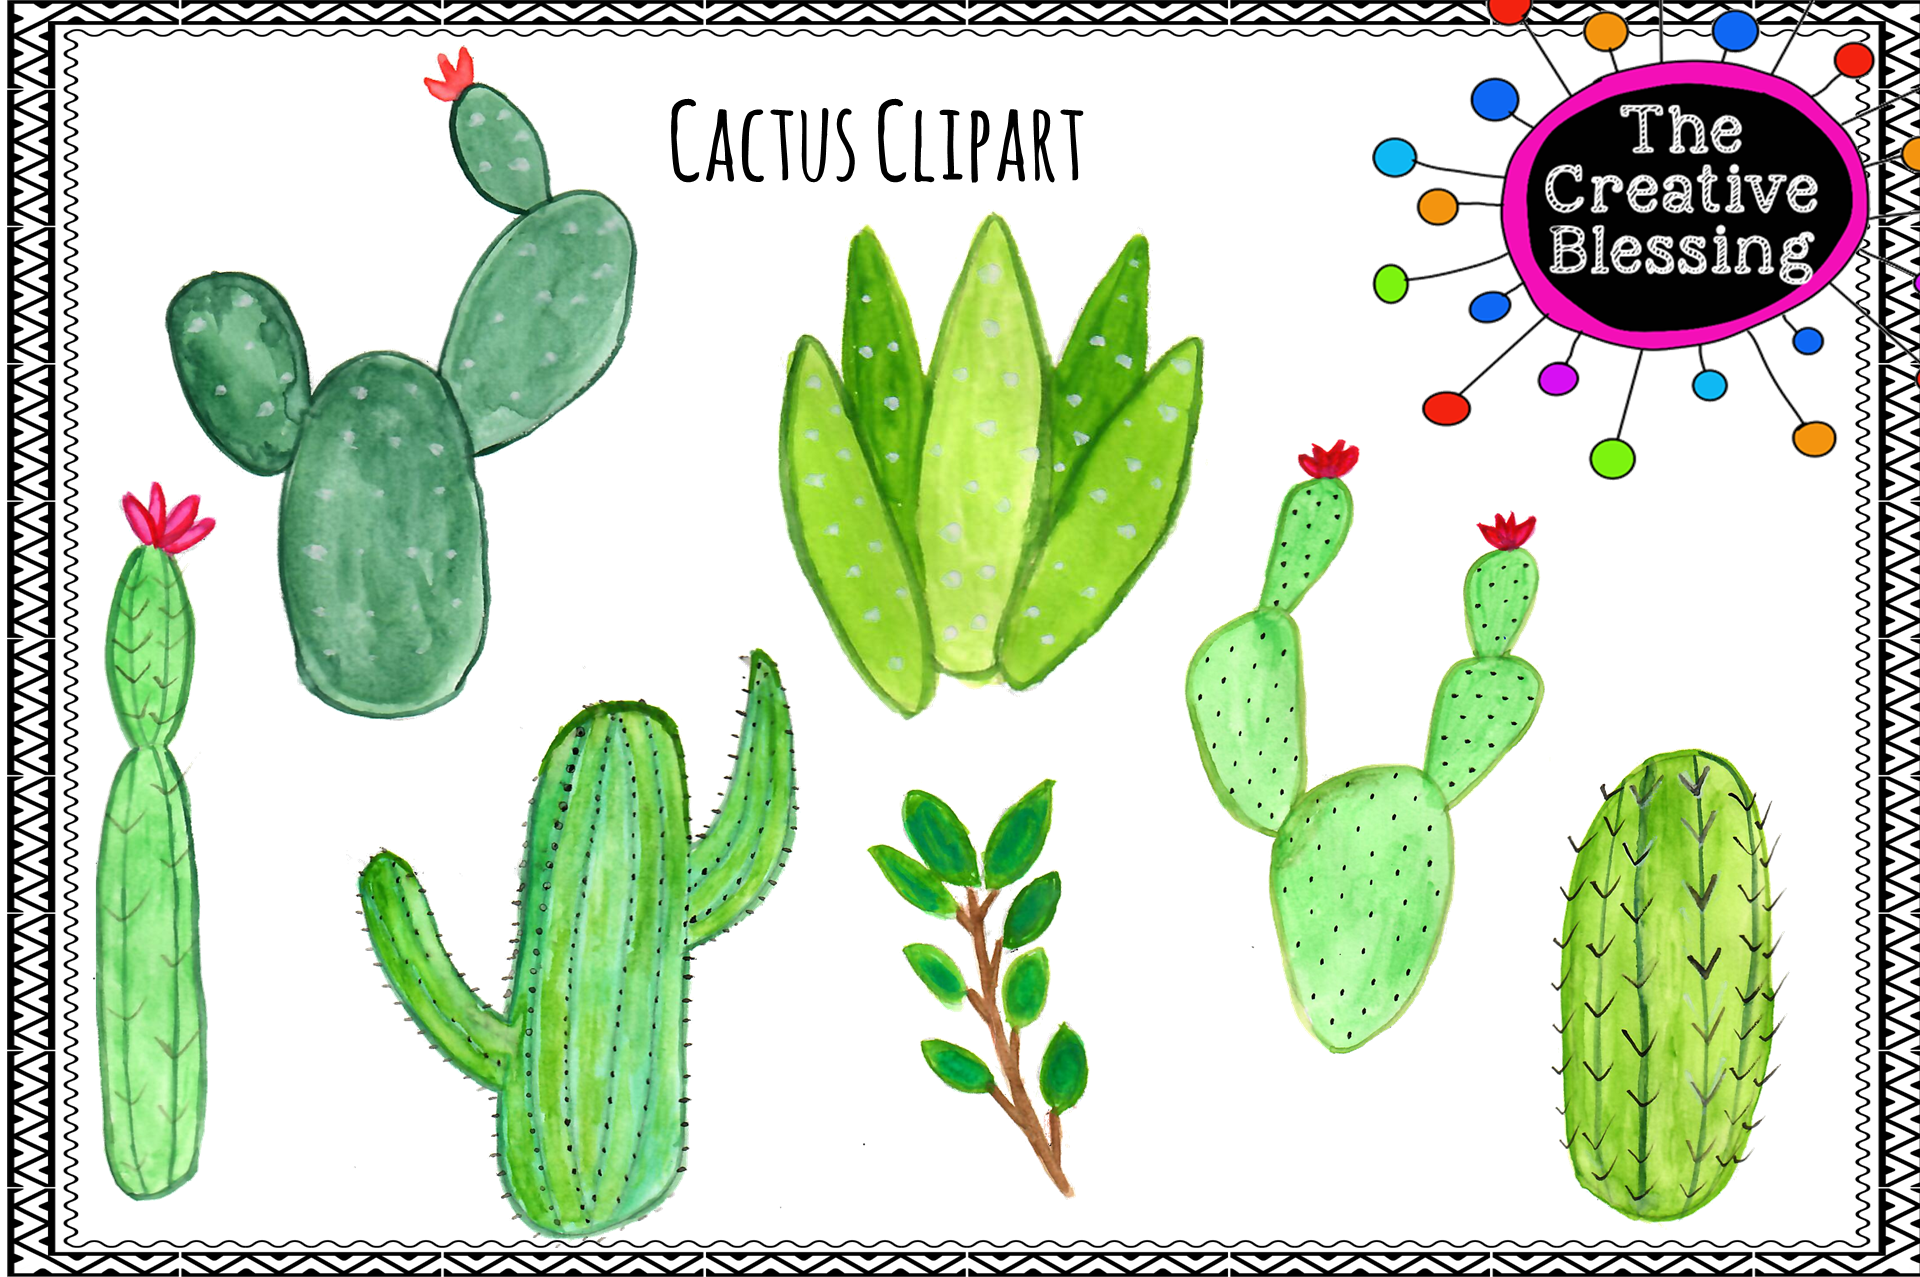 Watercolor Cactus Clipart example image 1